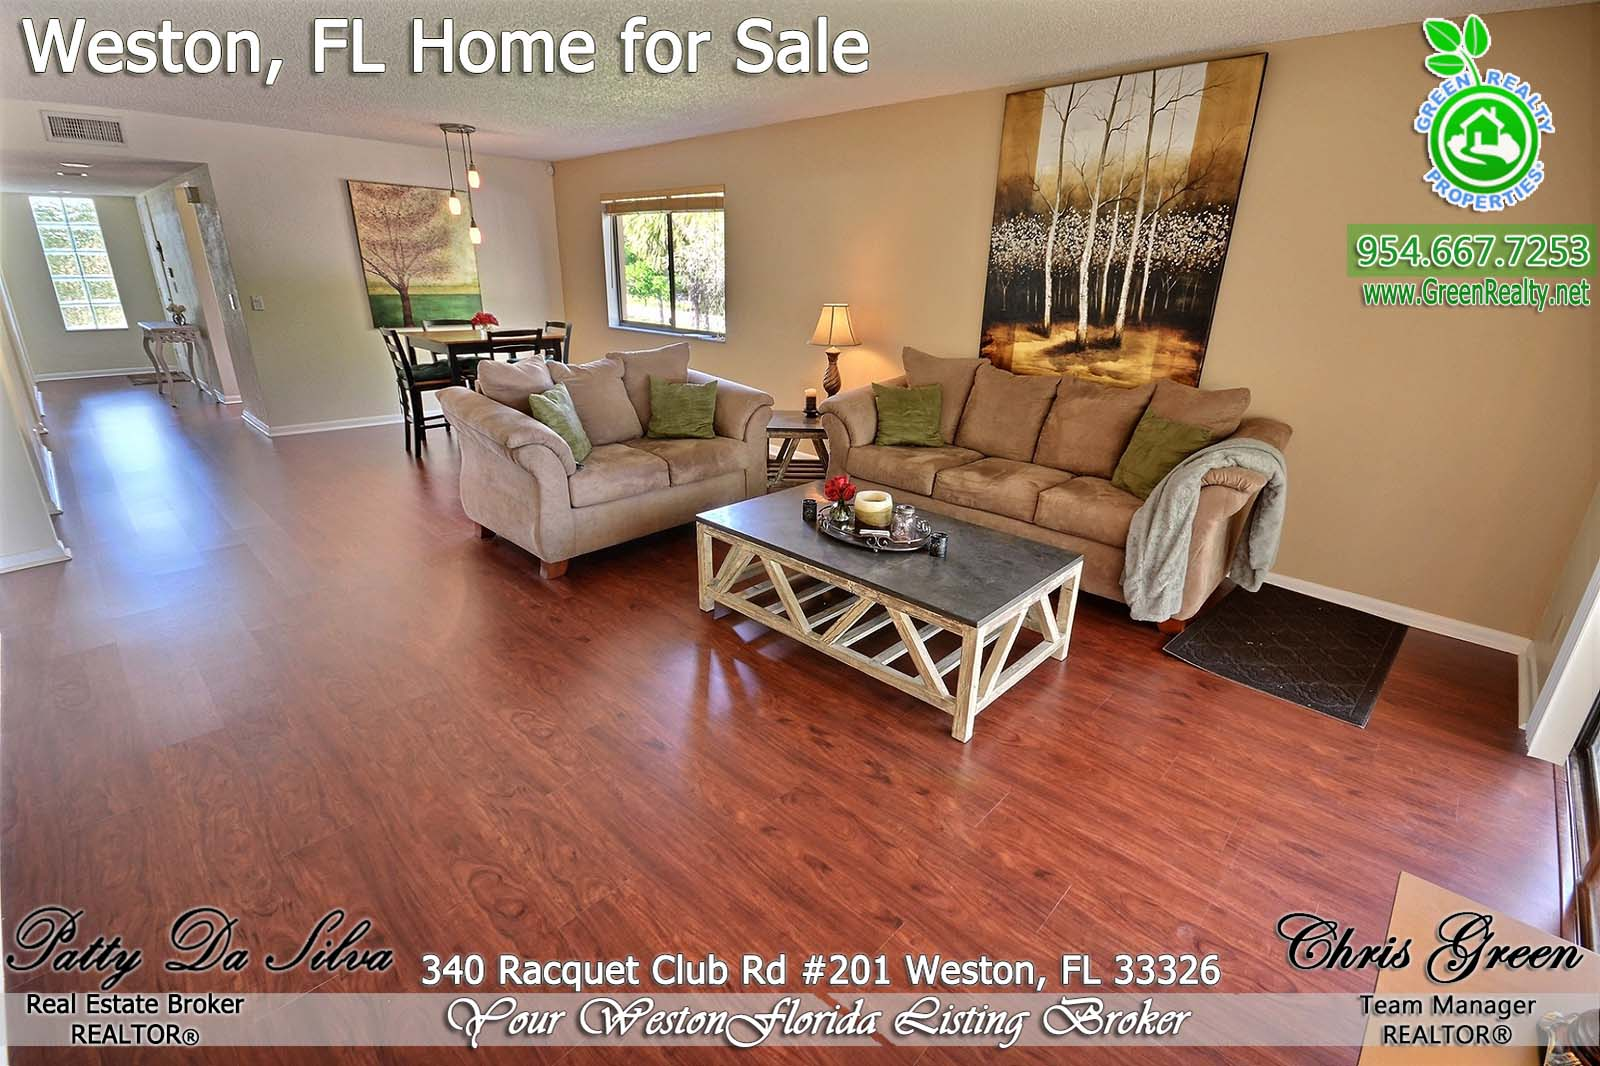 10 For Sale by Owner in Weston Florida